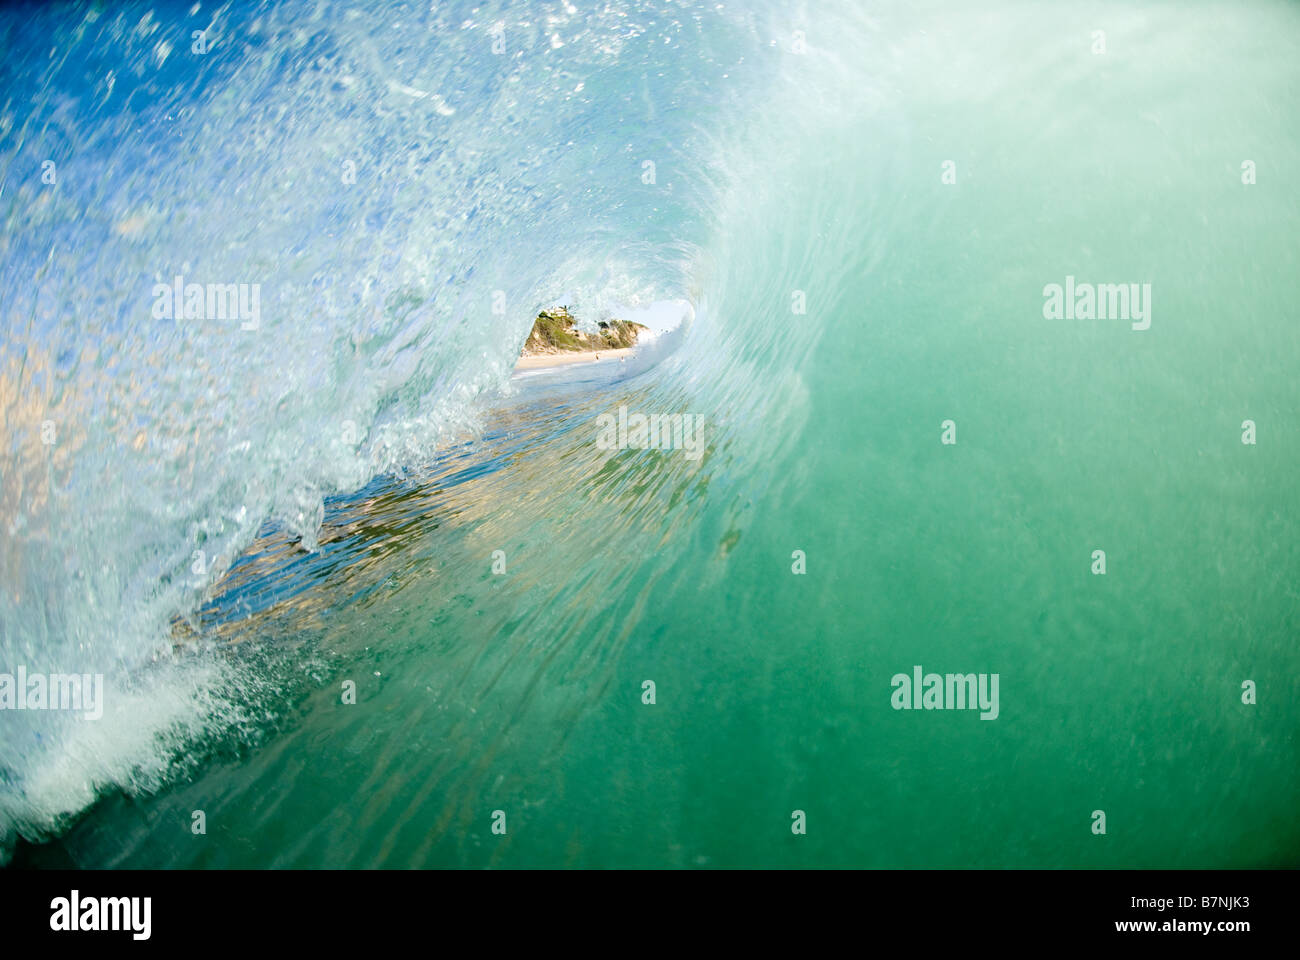 A wave breaking. - Stock Image